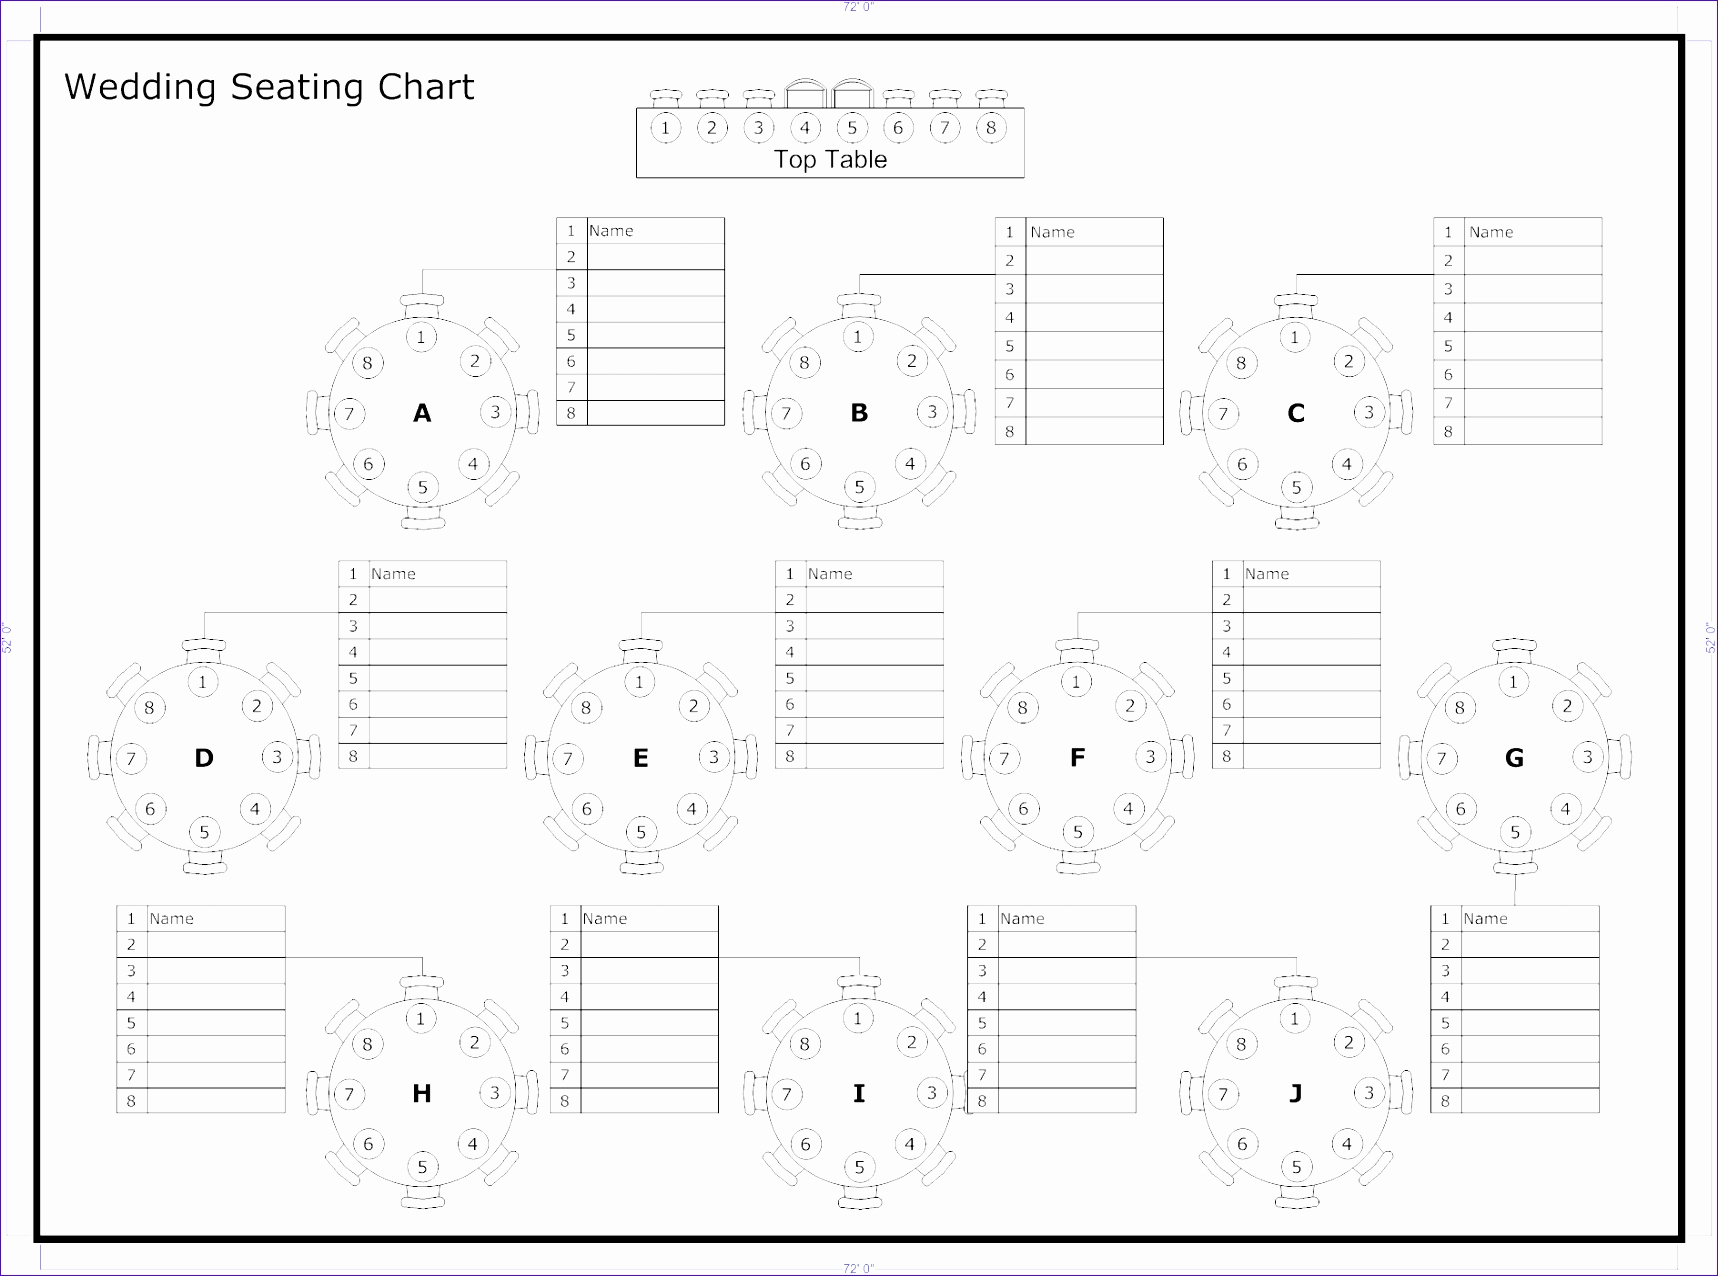 Free Seating Chart Template Unique 6 Wedding Seating Chart Template Excel Exceltemplates